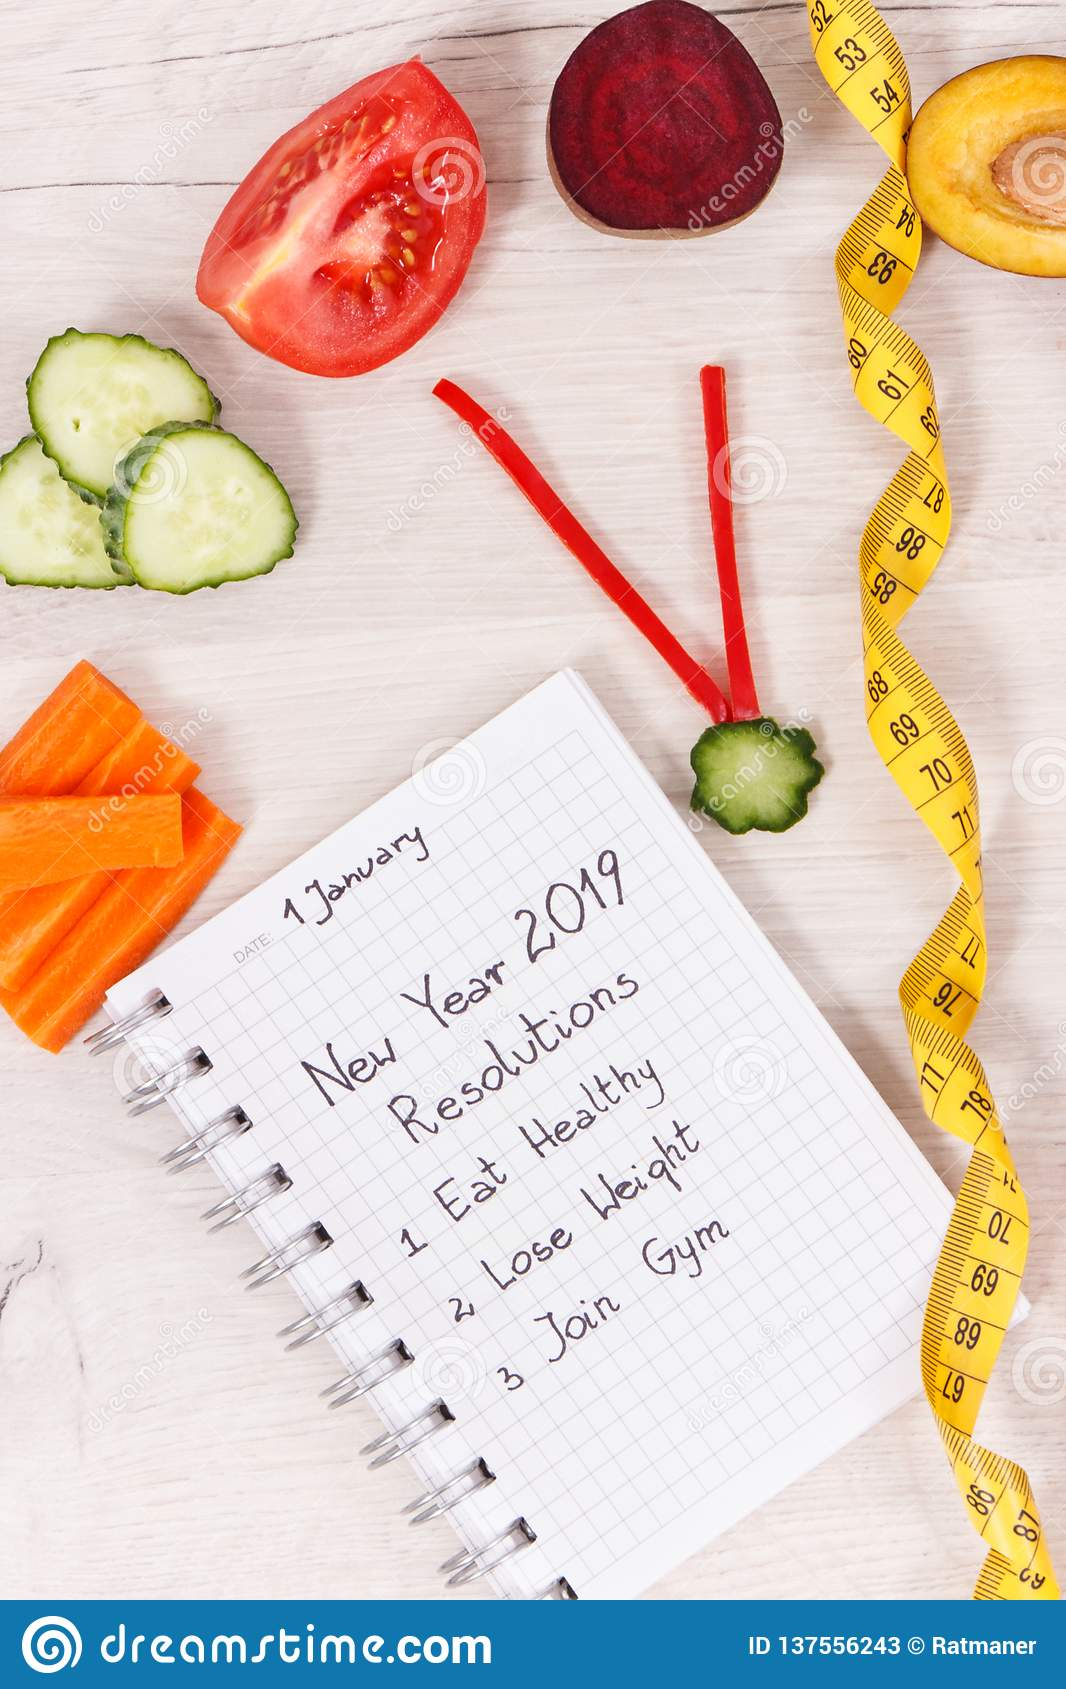 Goals For New Year 2019 In Notepad And Fruits With Vegetables In